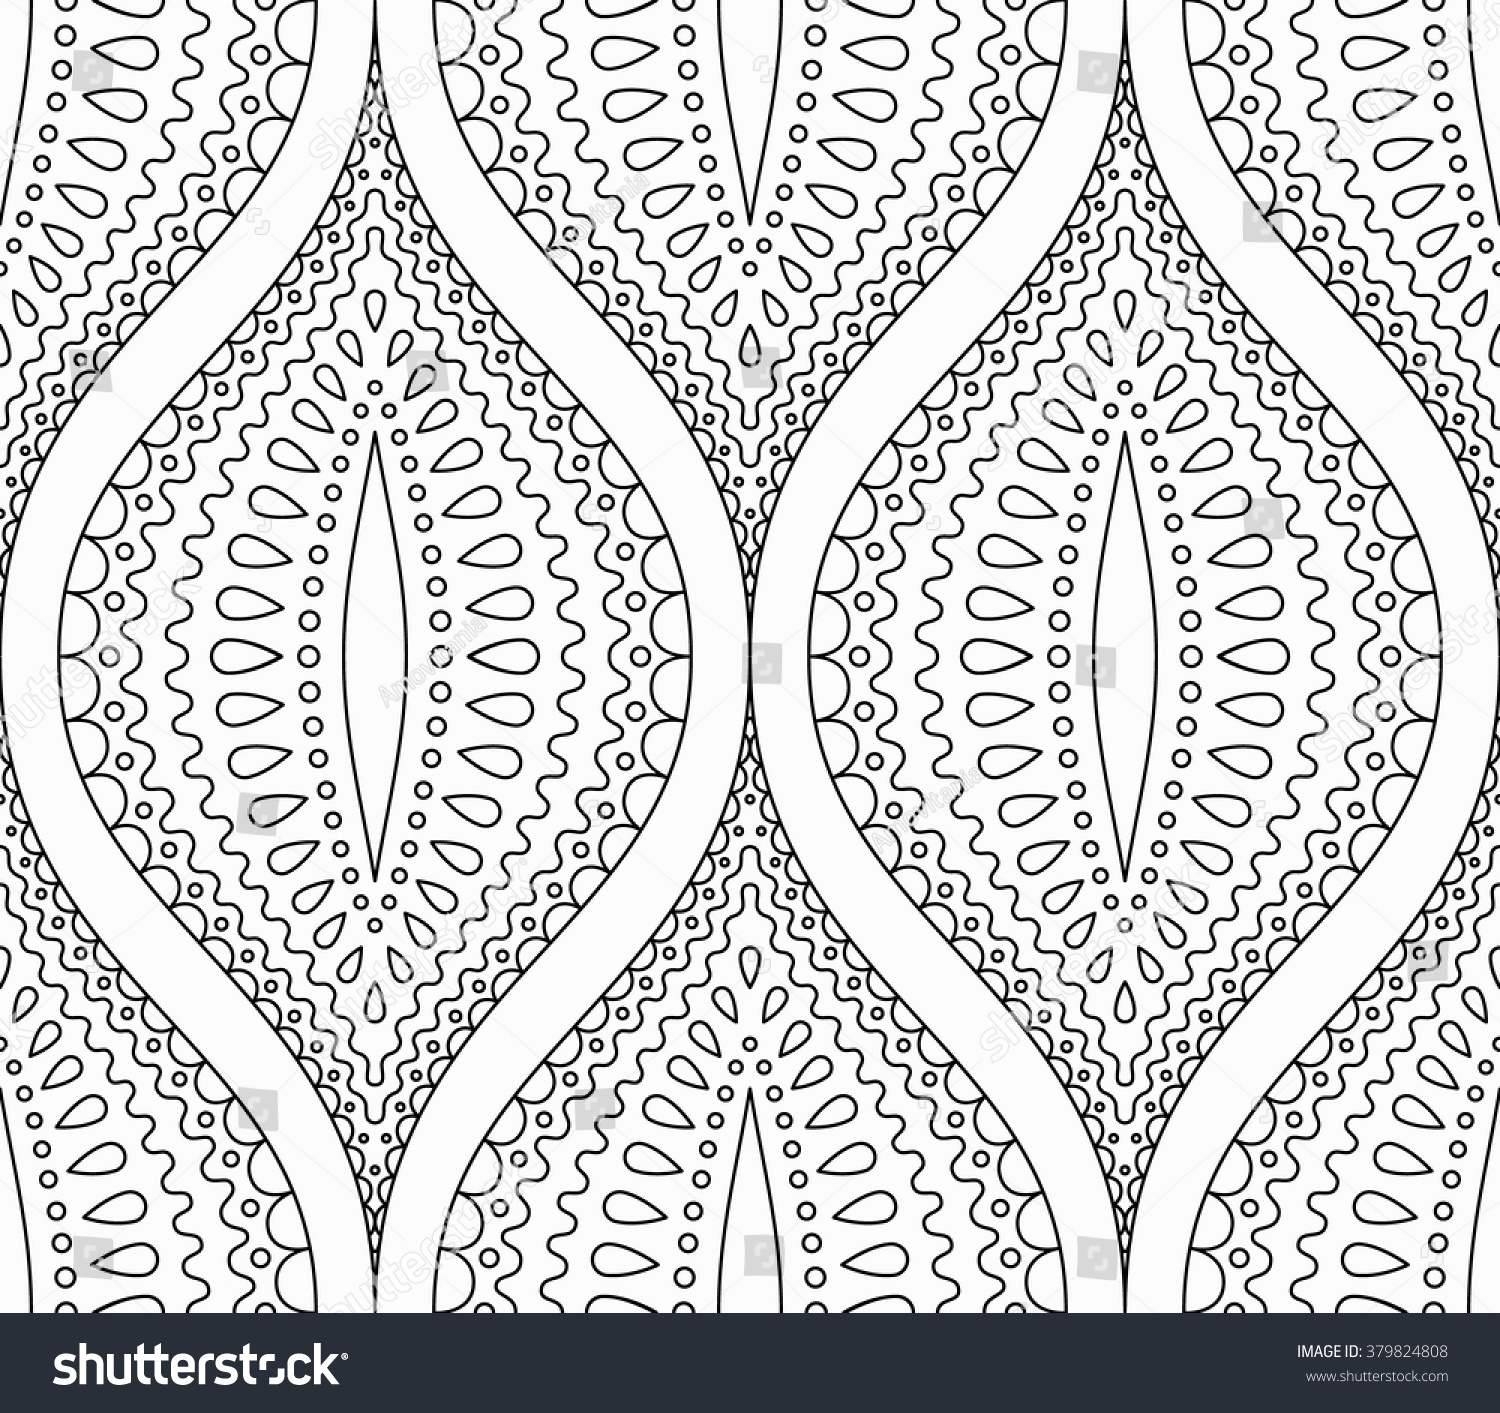 intricate black white pattern line design stock vector 379824808